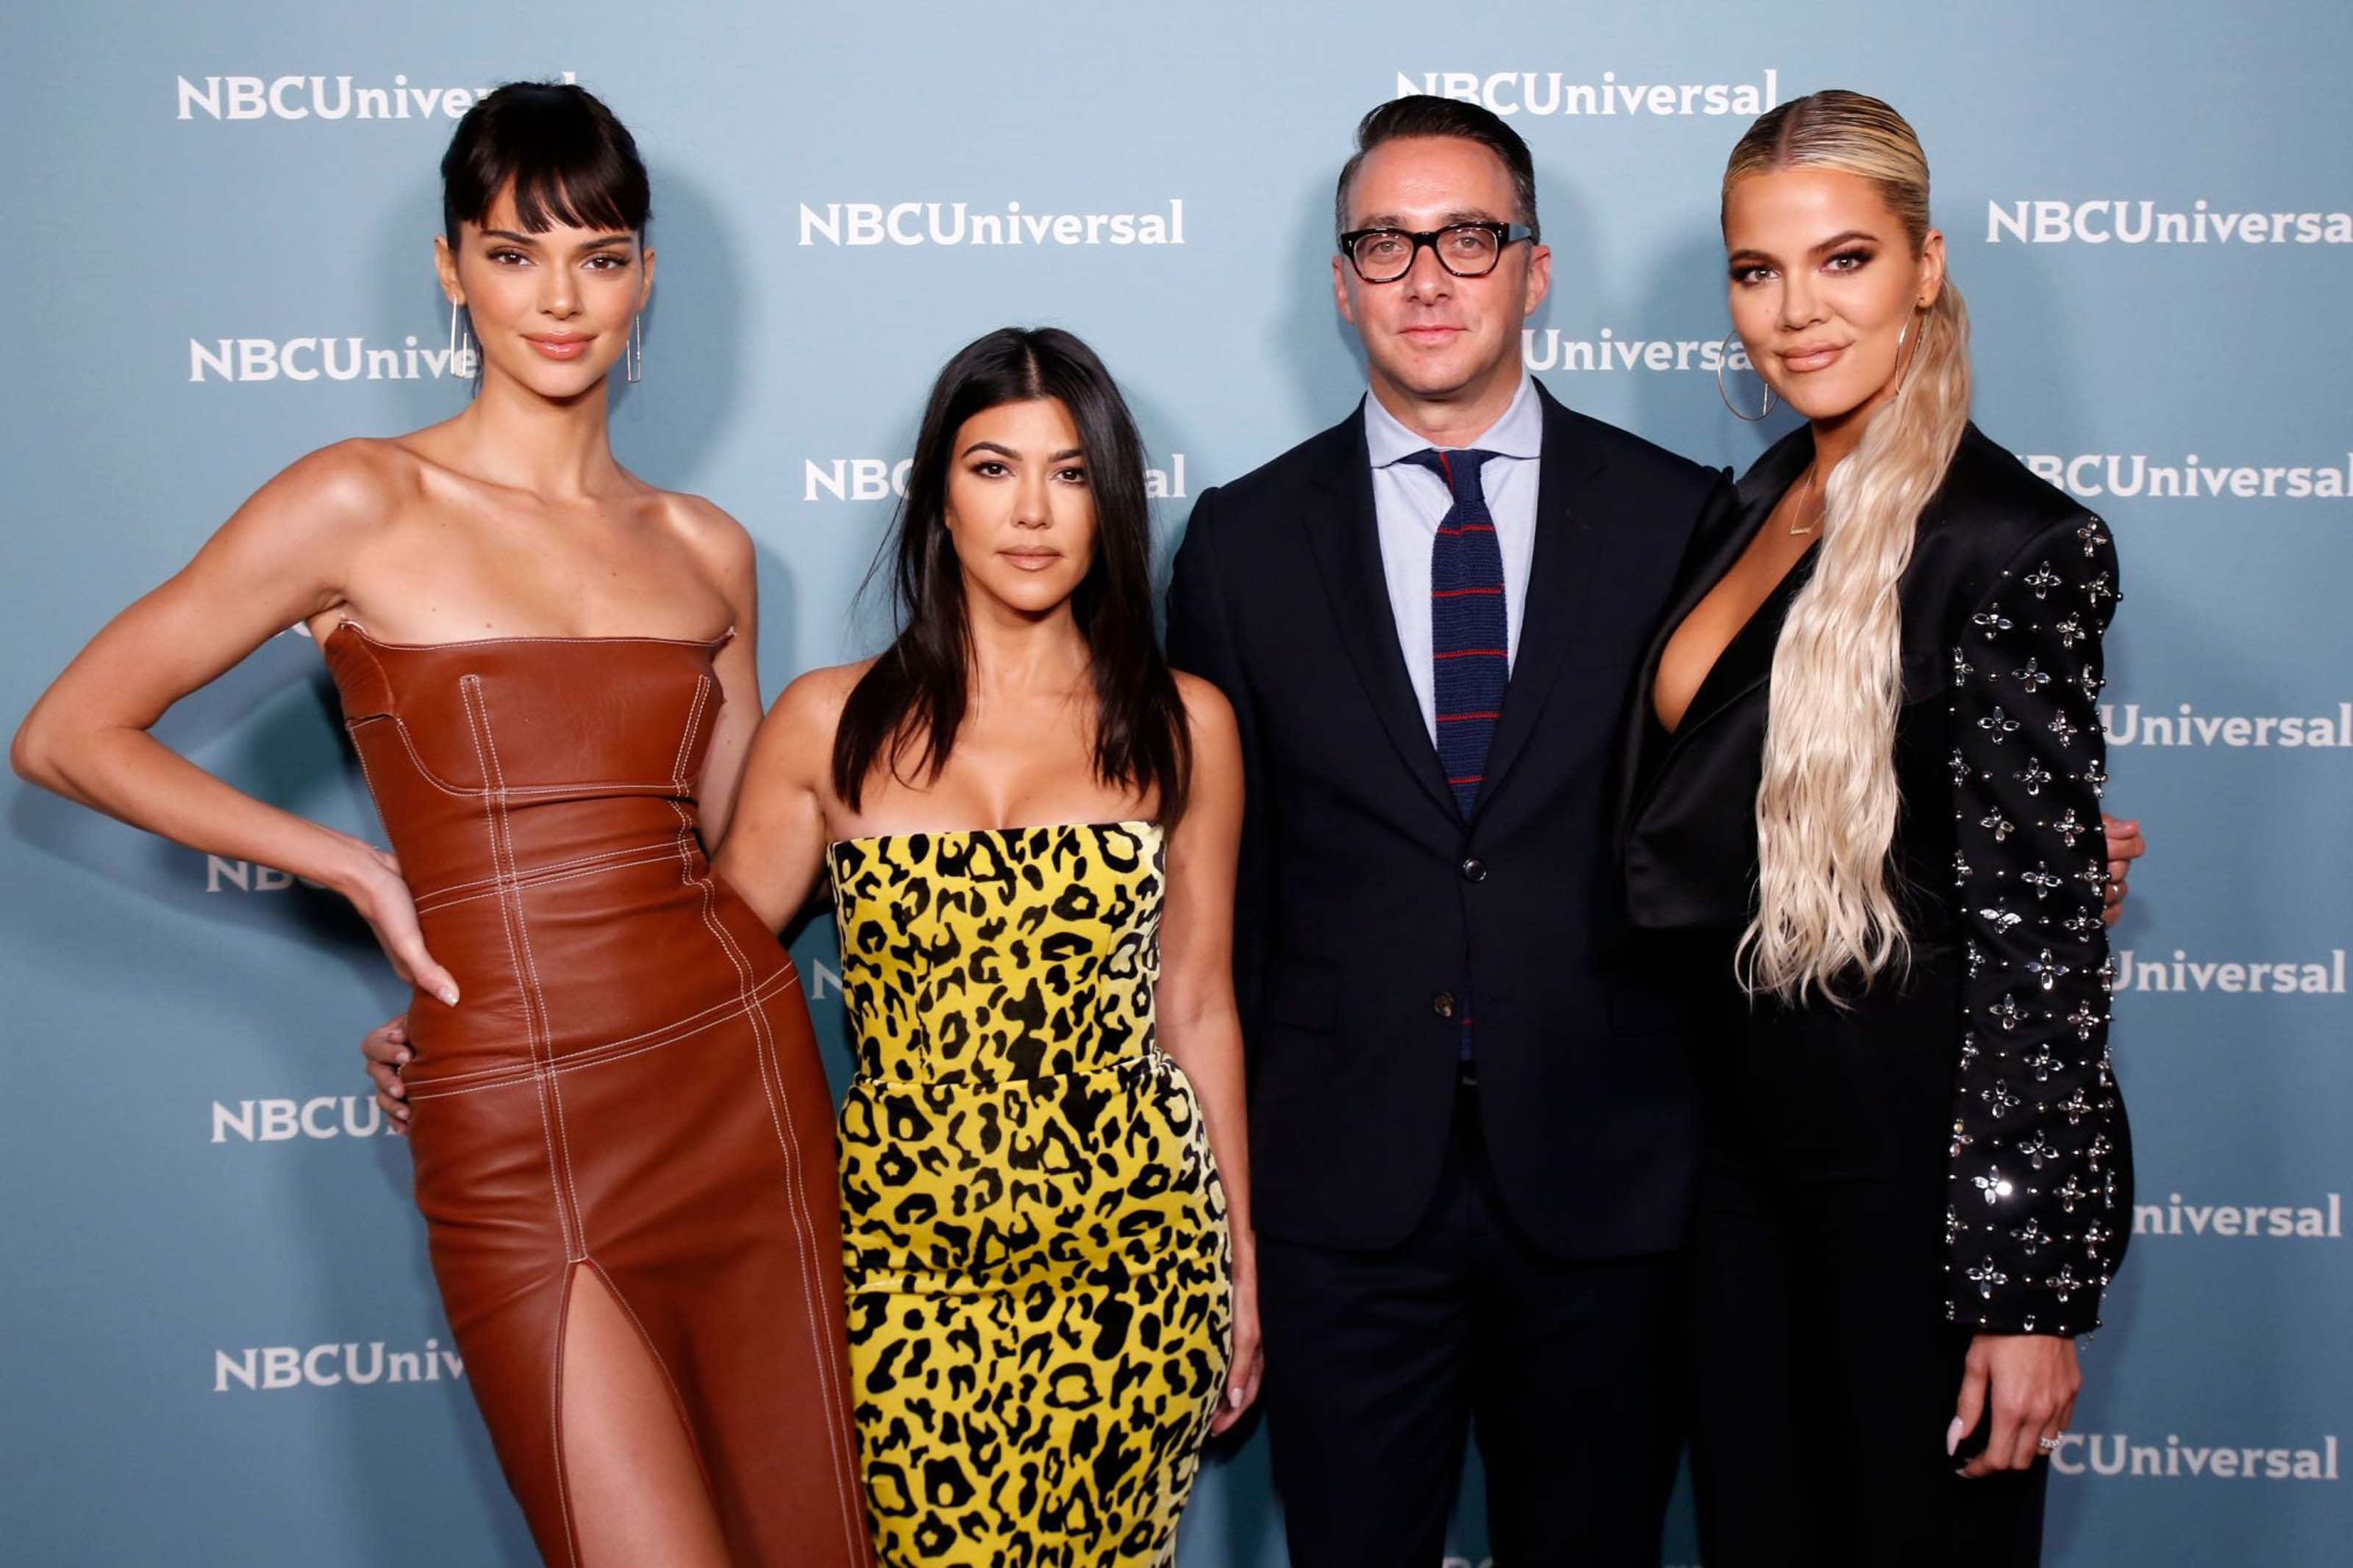 Kendall Jenner attends NBCUniversal Upfront Presentation